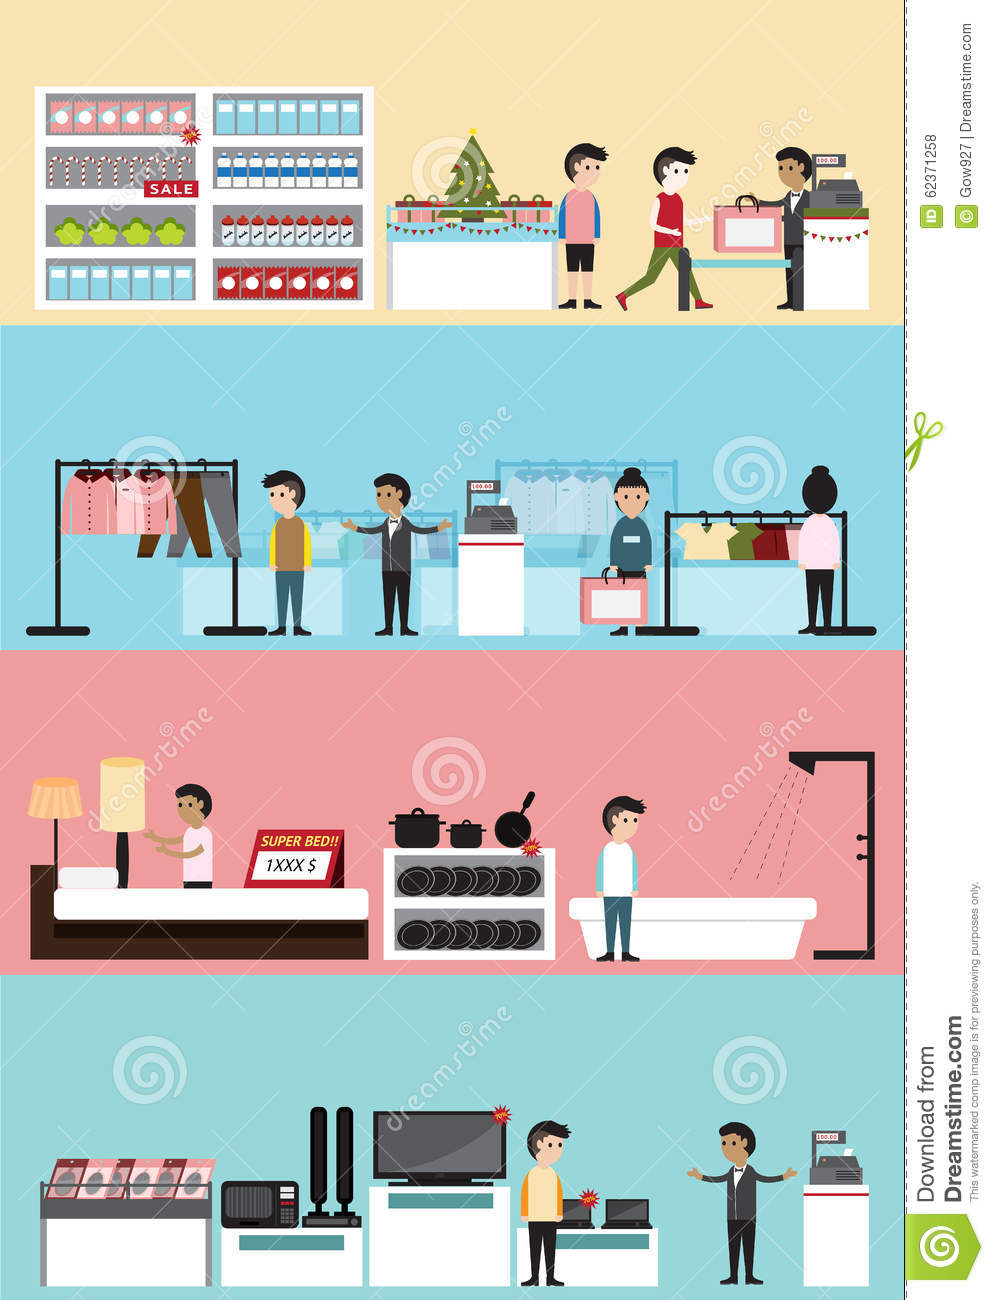 Department store cartoon images for Store building design